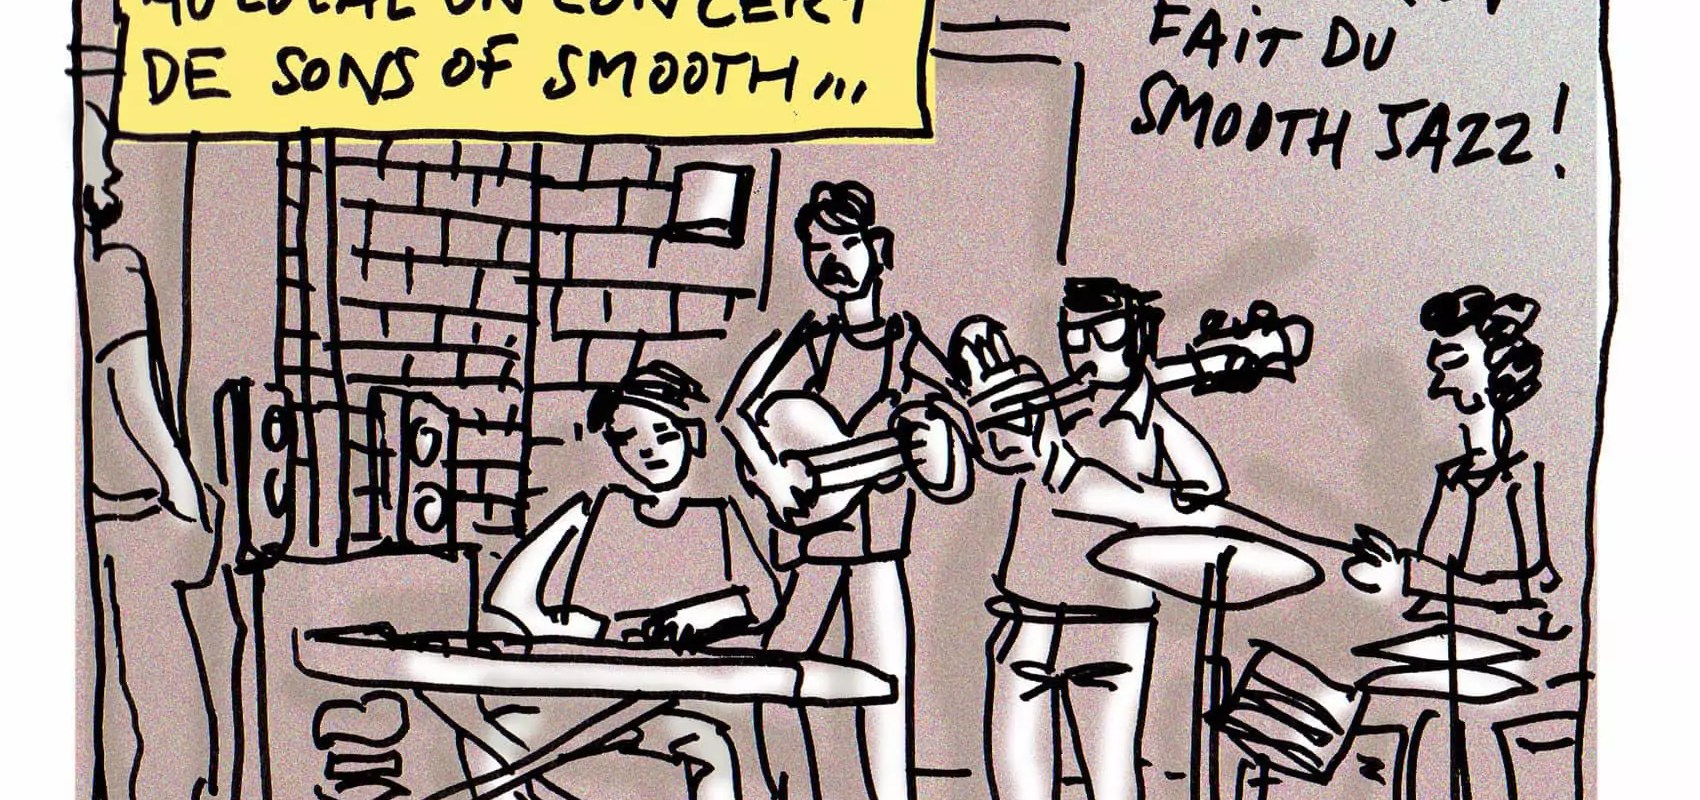 Le jazz tranquille de Sons of Smooth au Local